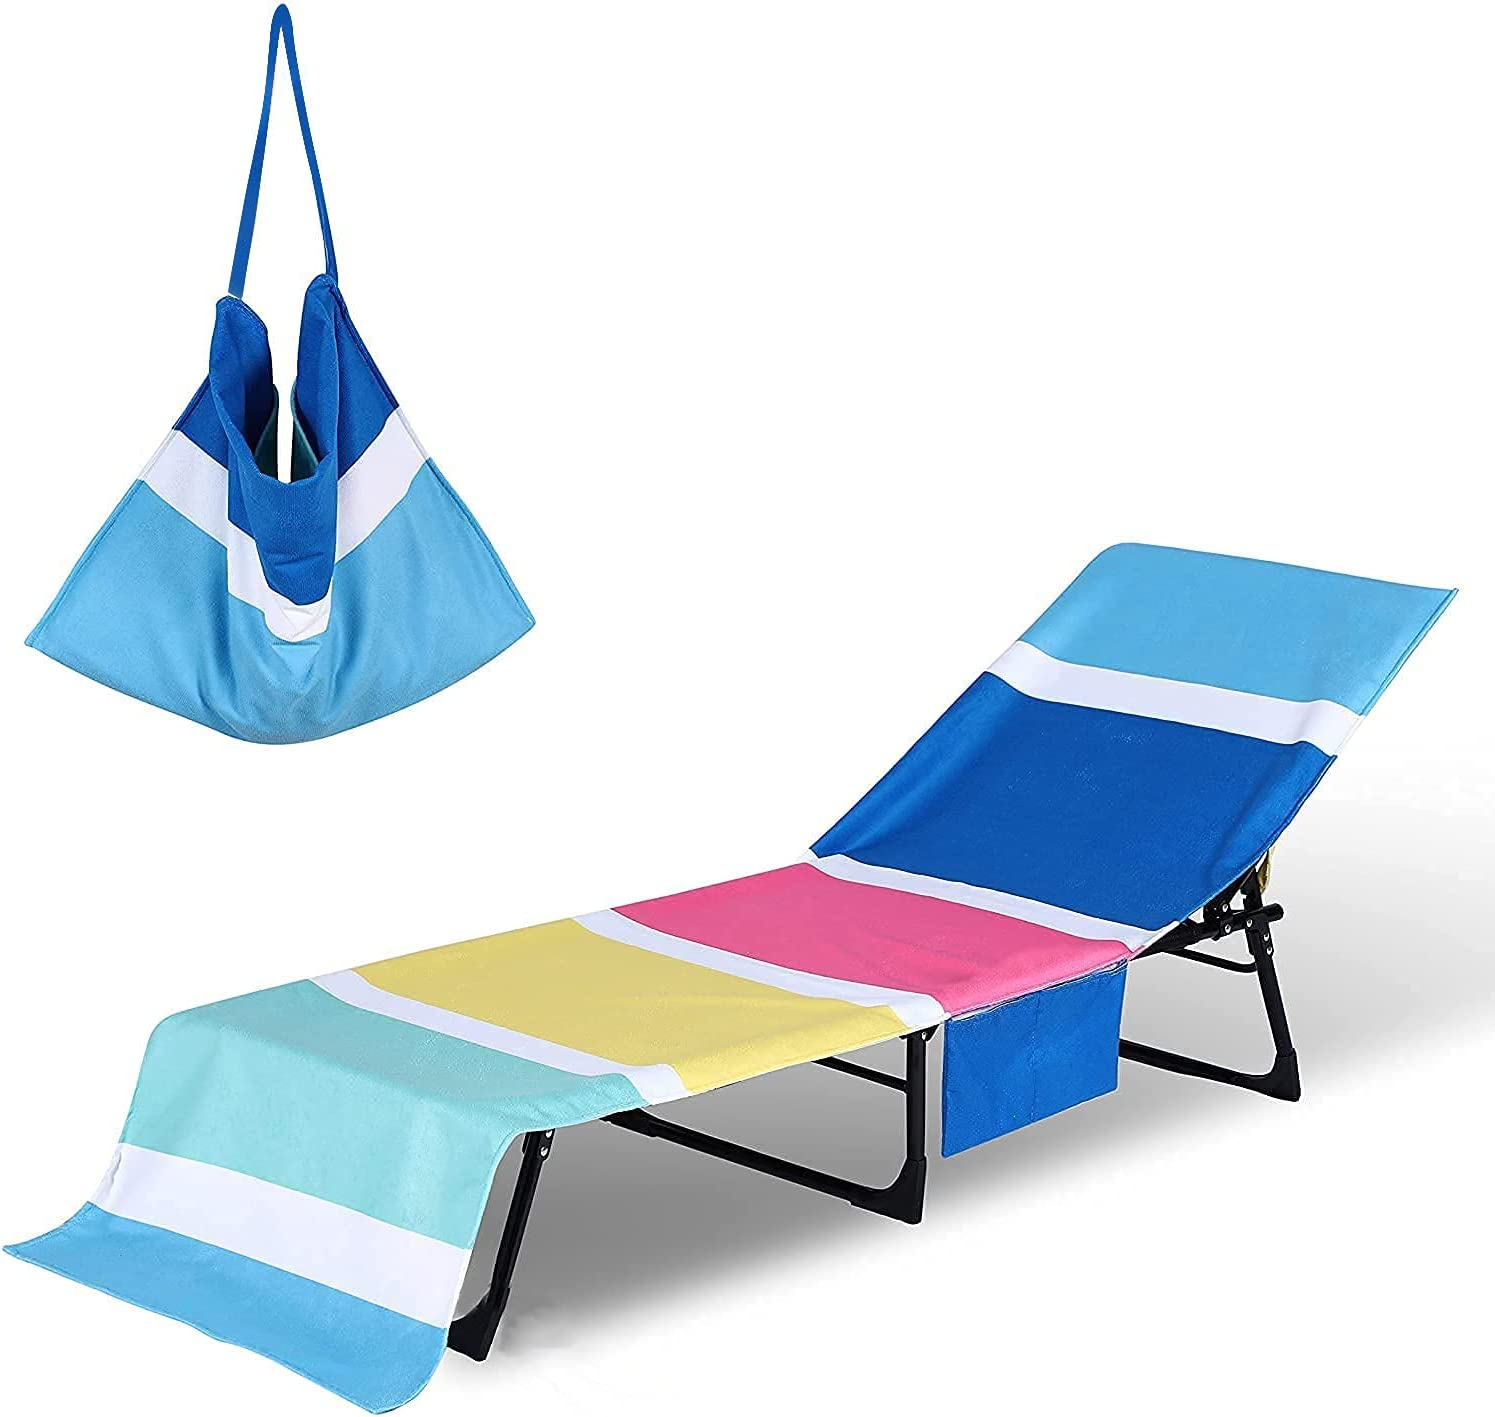 Beach Lounge Chair Towel Cover Quick Drying,Soft Microfiber Beach Towel Swimming Patio Pool Chair Cover with Pockets Detachable for Outdoor Garden Summer Rest Sun Lounger Hotel Vacation